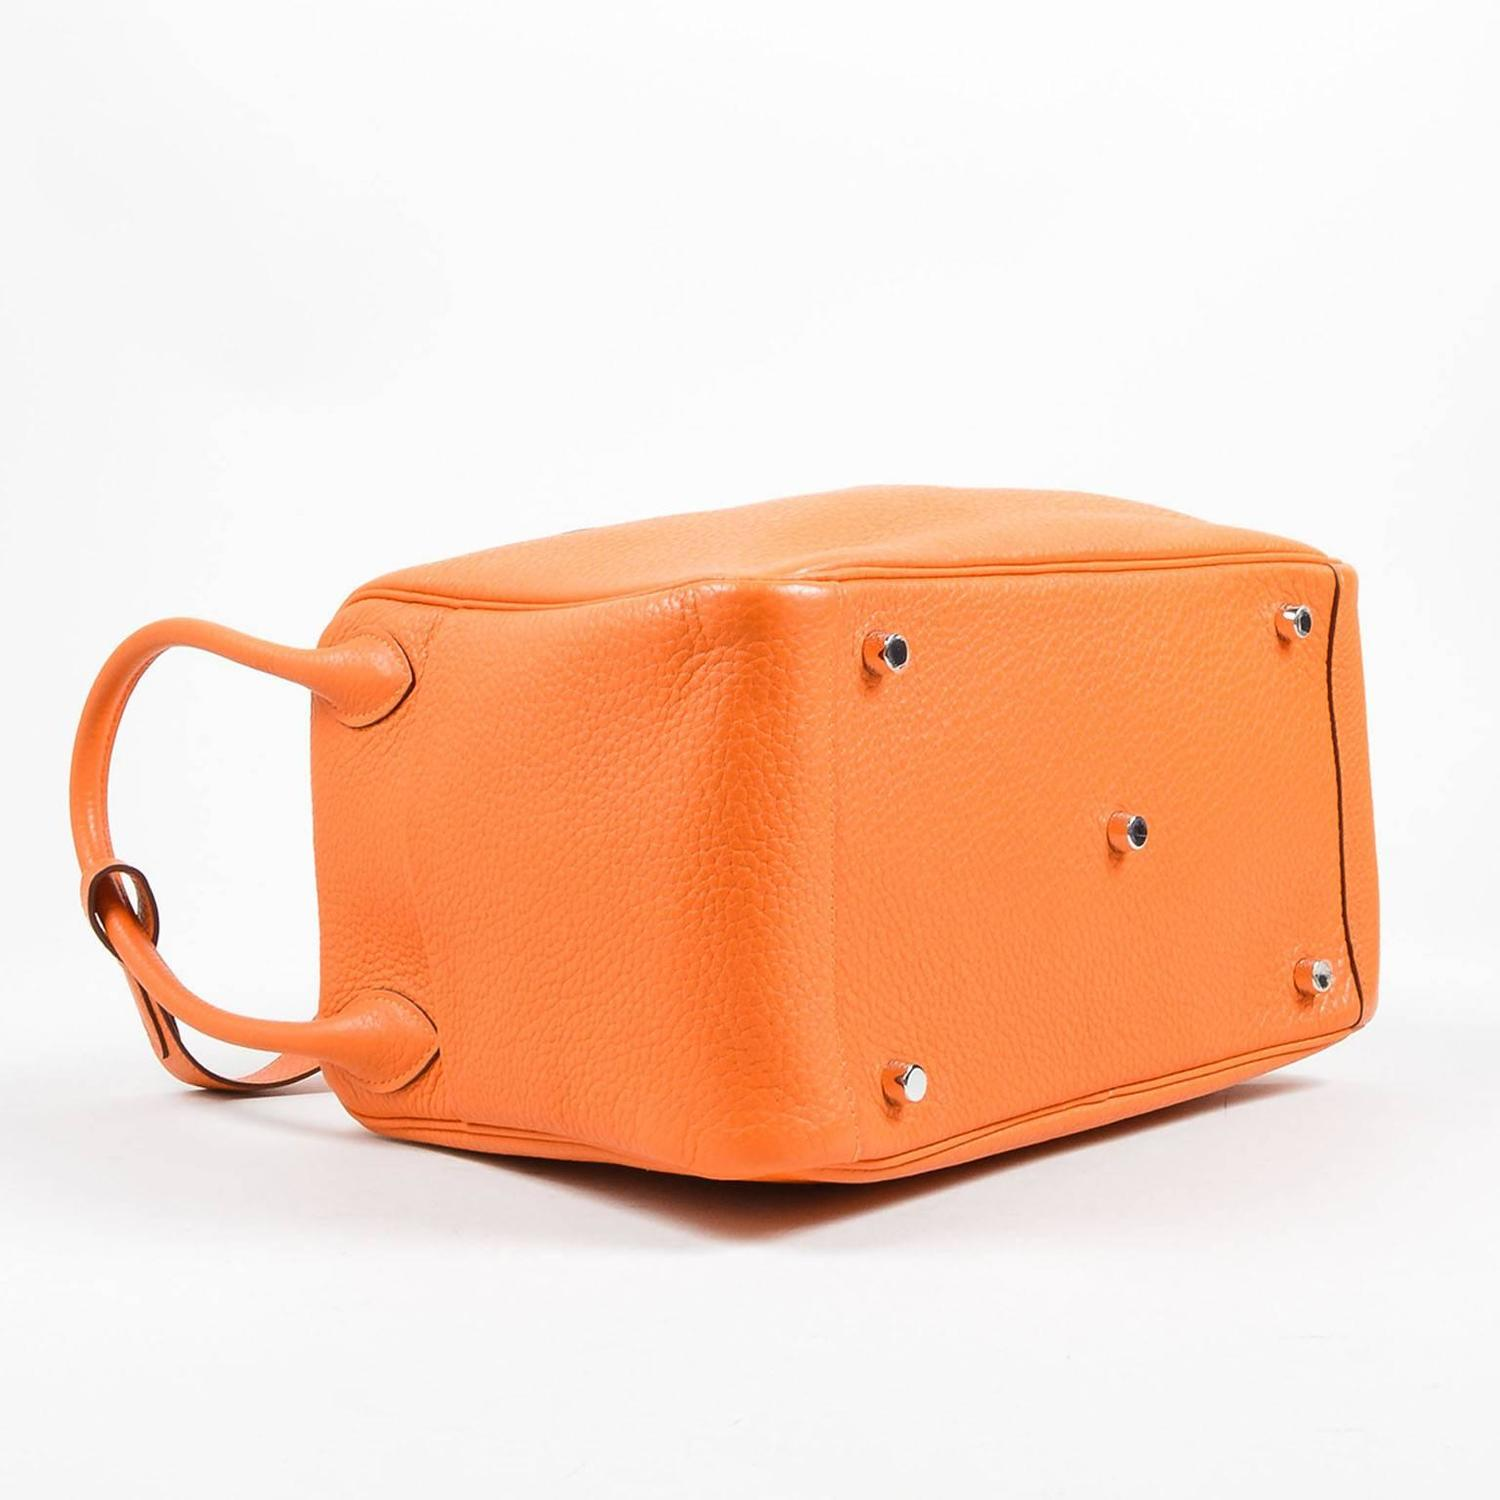 Hermes Fire Orange Taurillon Clemence Calfskin Leather 30cm Lindy ...